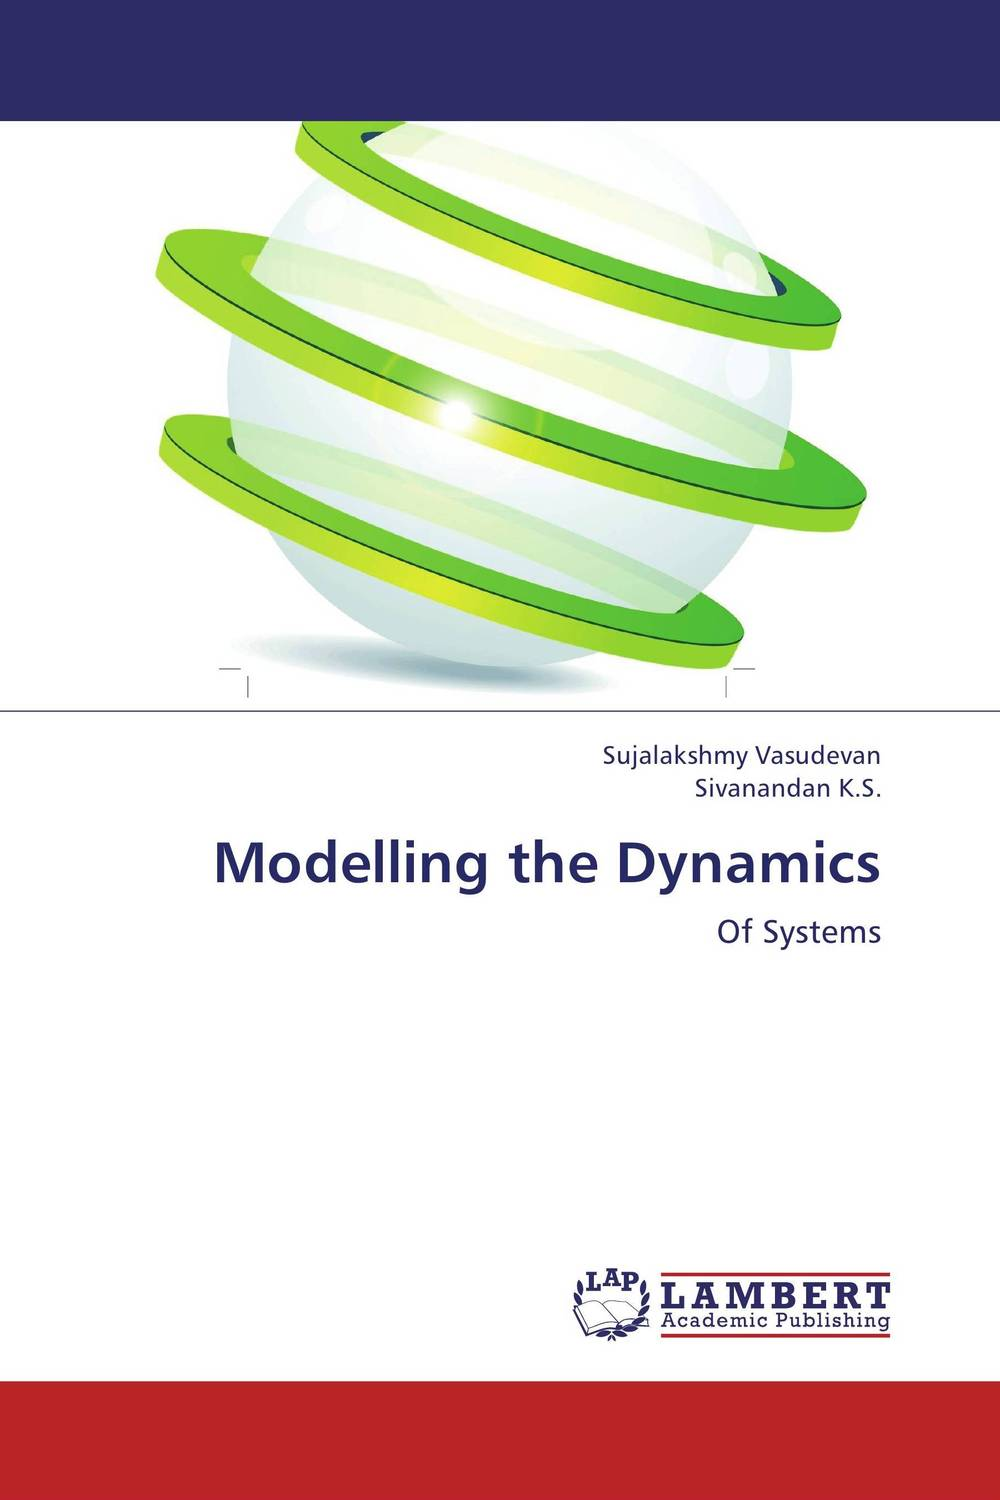 Modelling the Dynamics